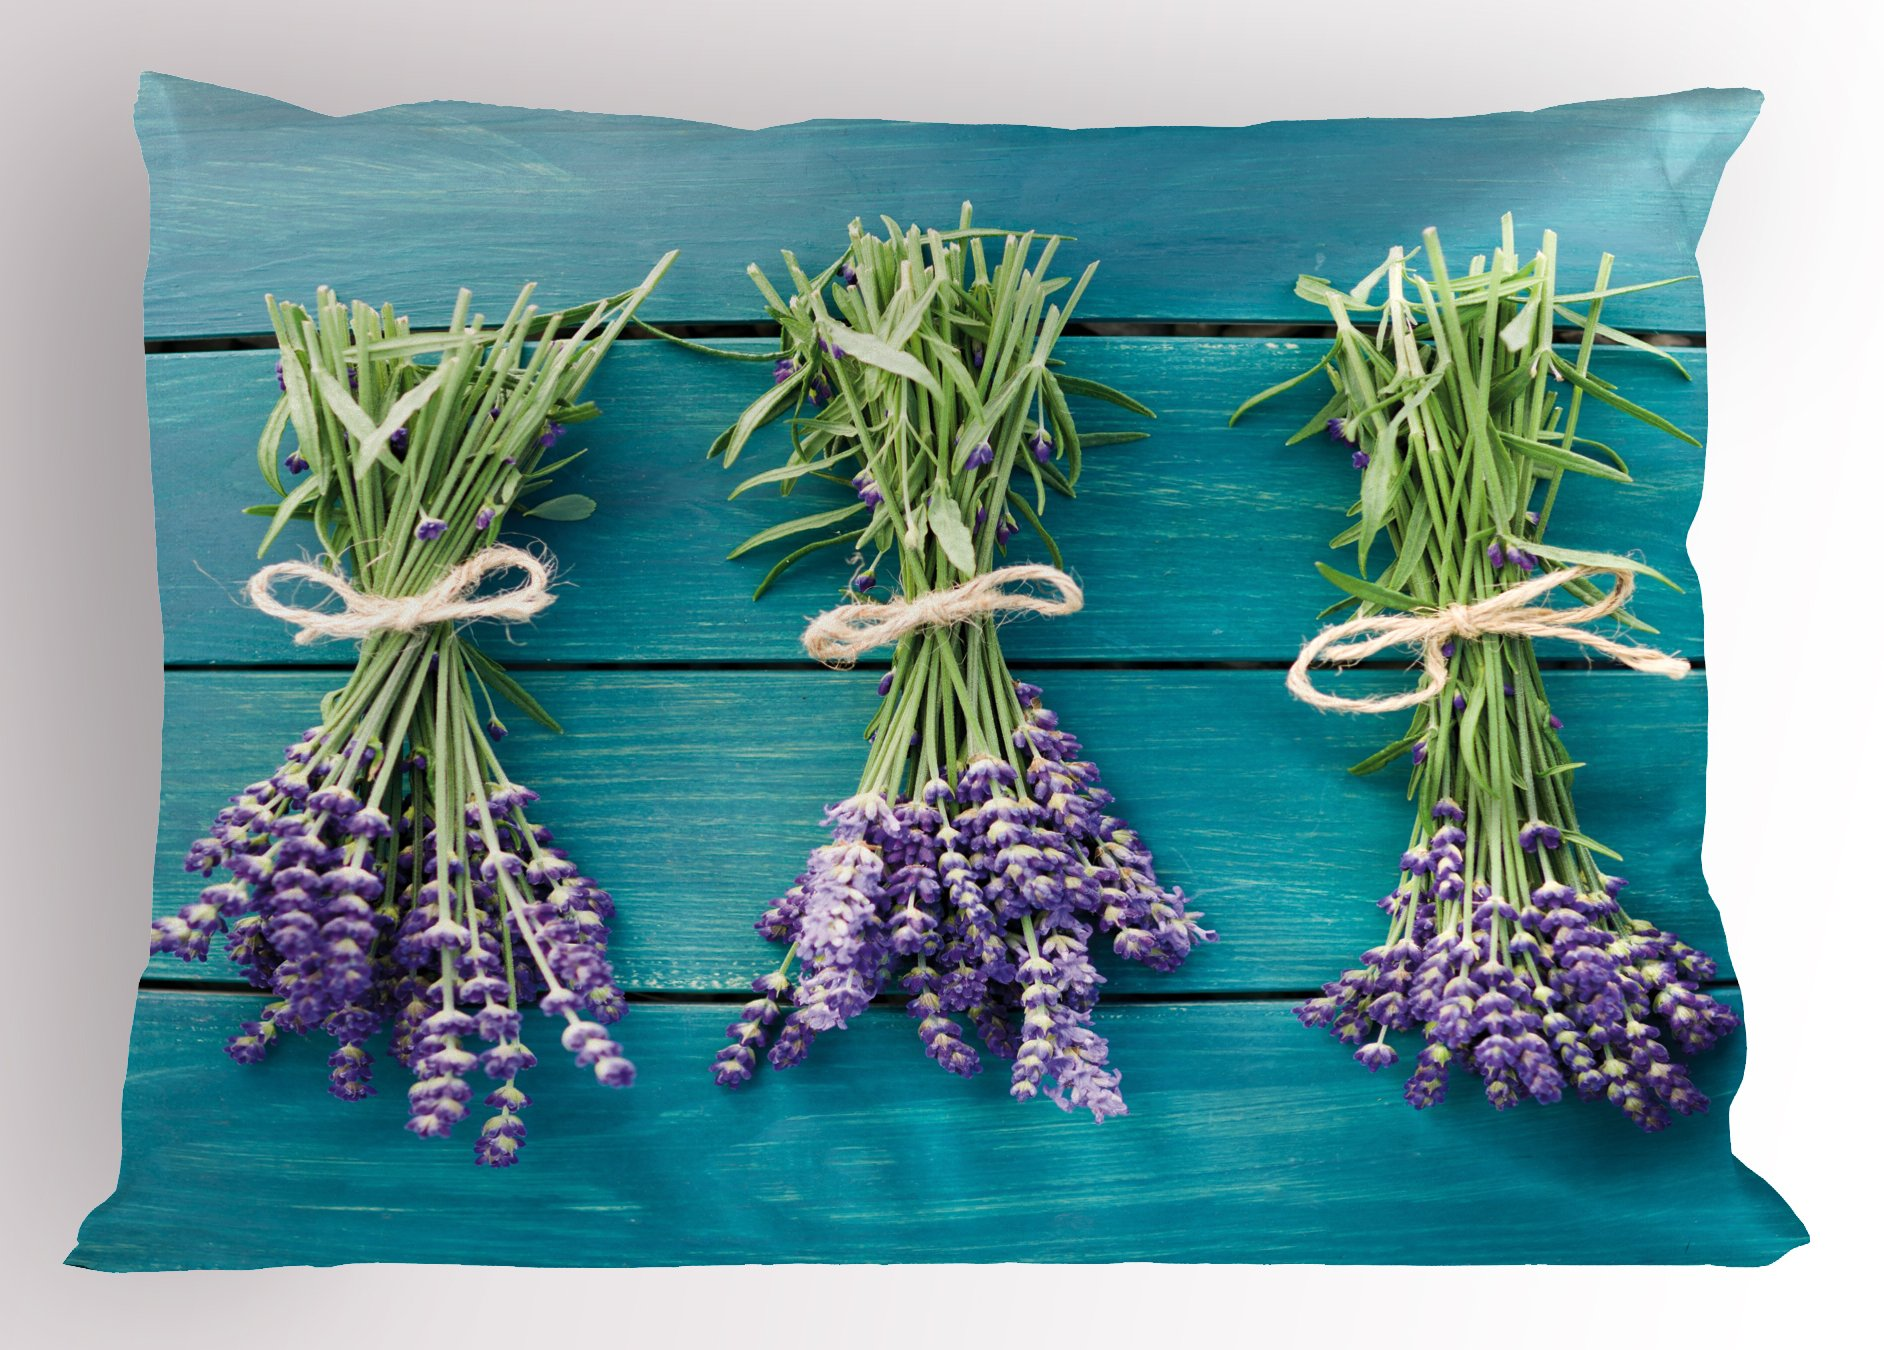 Lunarable Lavender Pillow Sham, Fresh Lavender Bouquets on Blue Wooden Planks Rustic Relaxing Spa, Decorative Standard Size Printed Pillowcase, 26 X 20 inches, Sky Blue Lavender Green